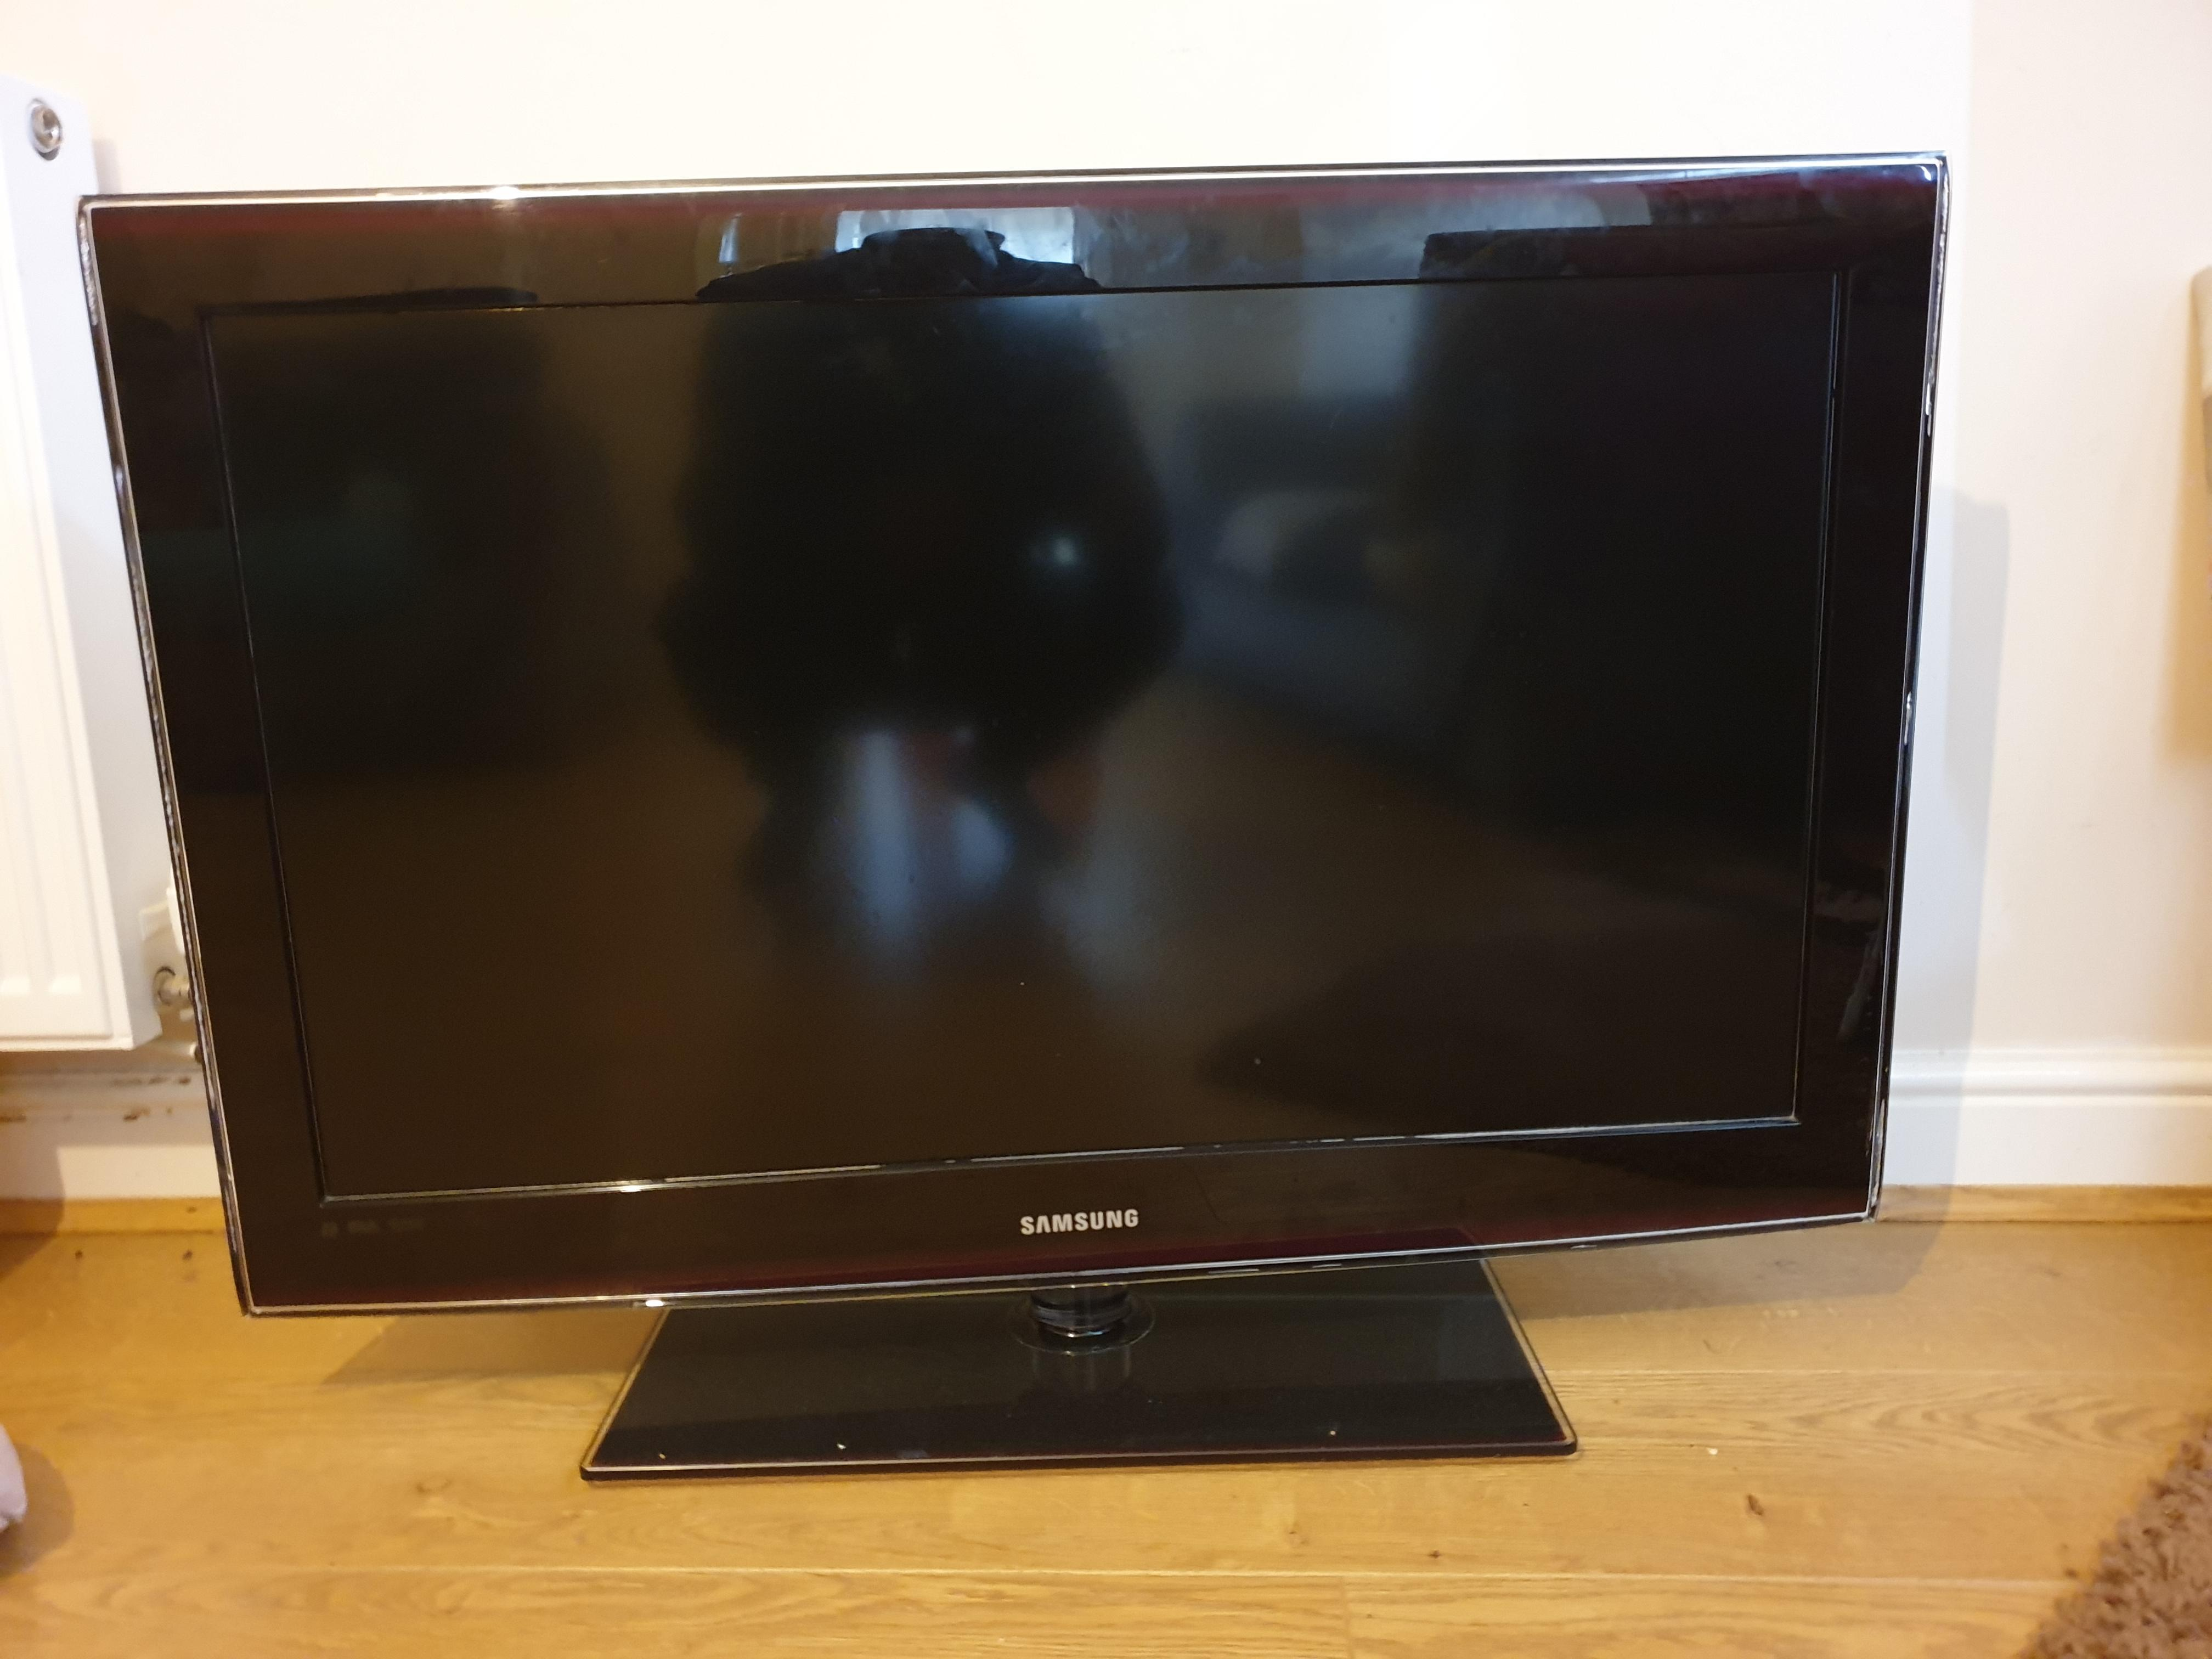 43 inches Samsung Tv